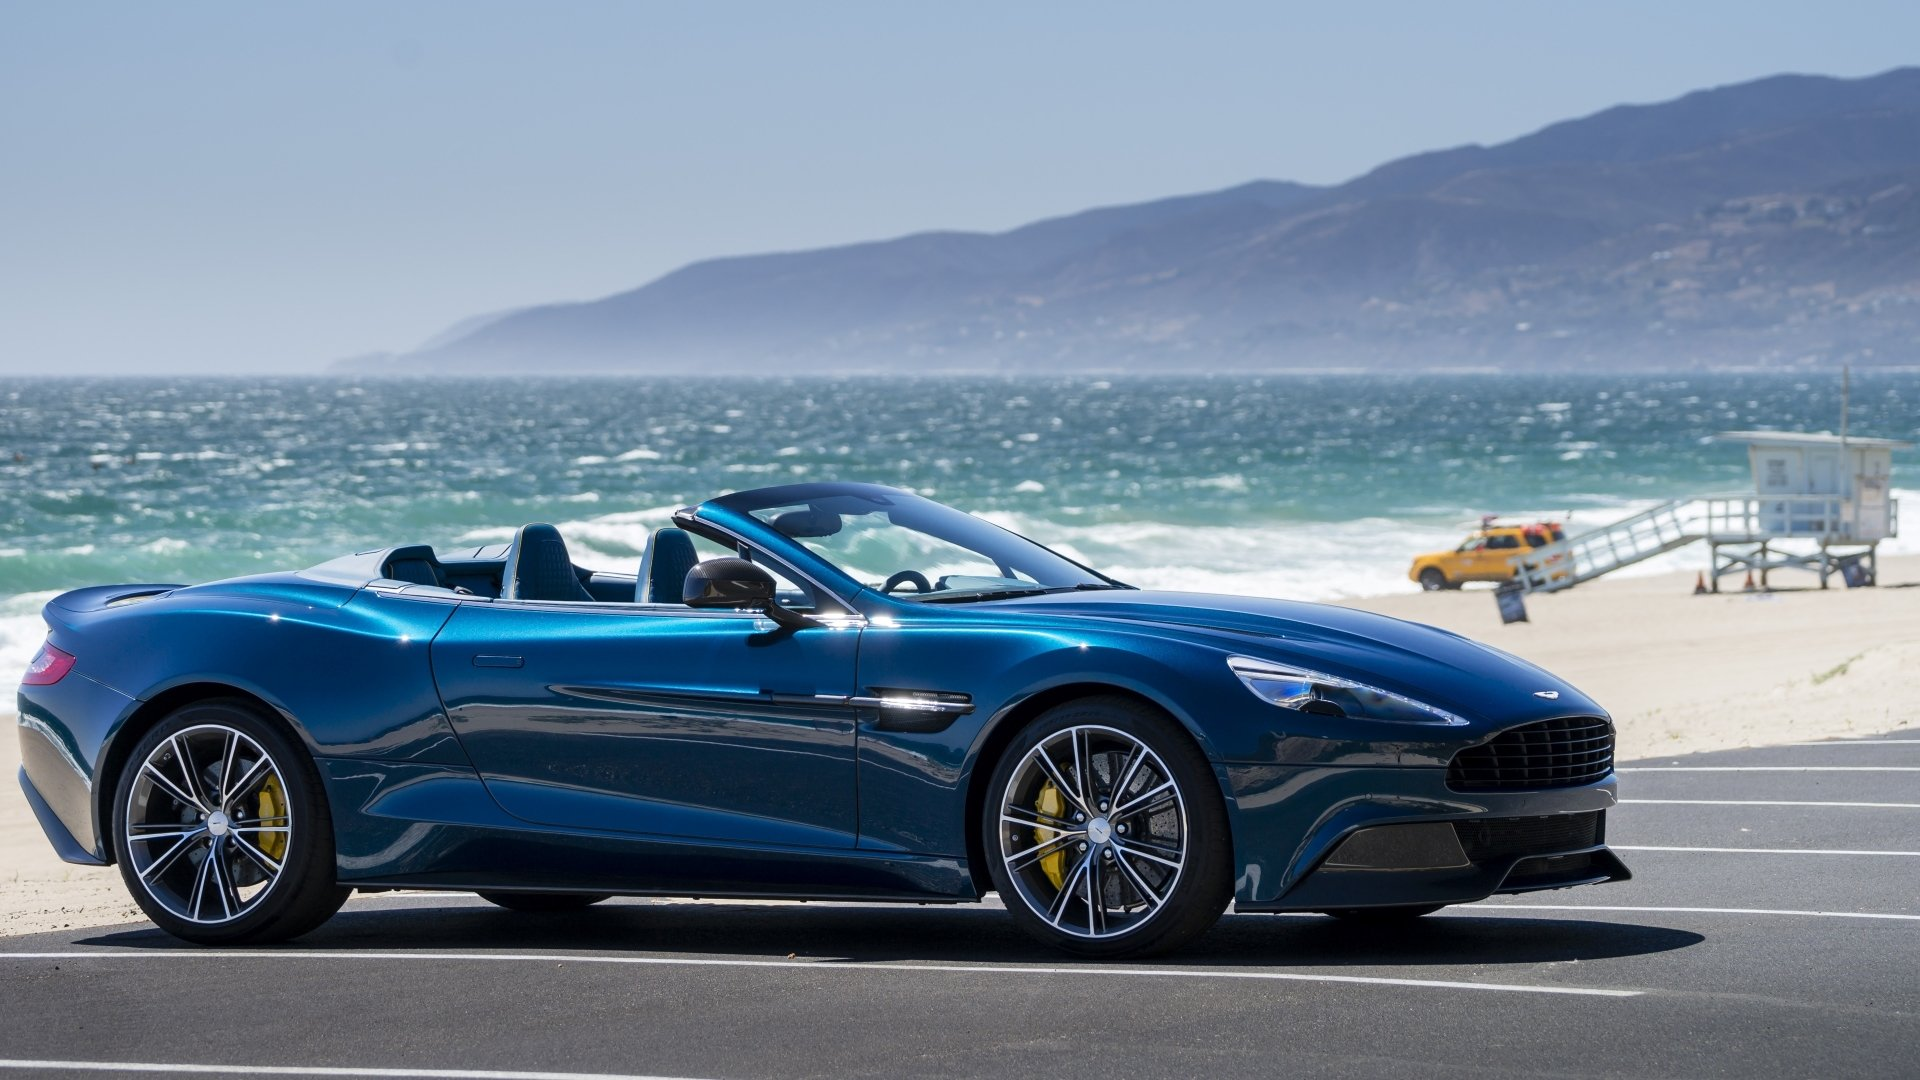 73 Aston Martin Vanquish Hd Wallpapers Background Images Wallpaper Abyss